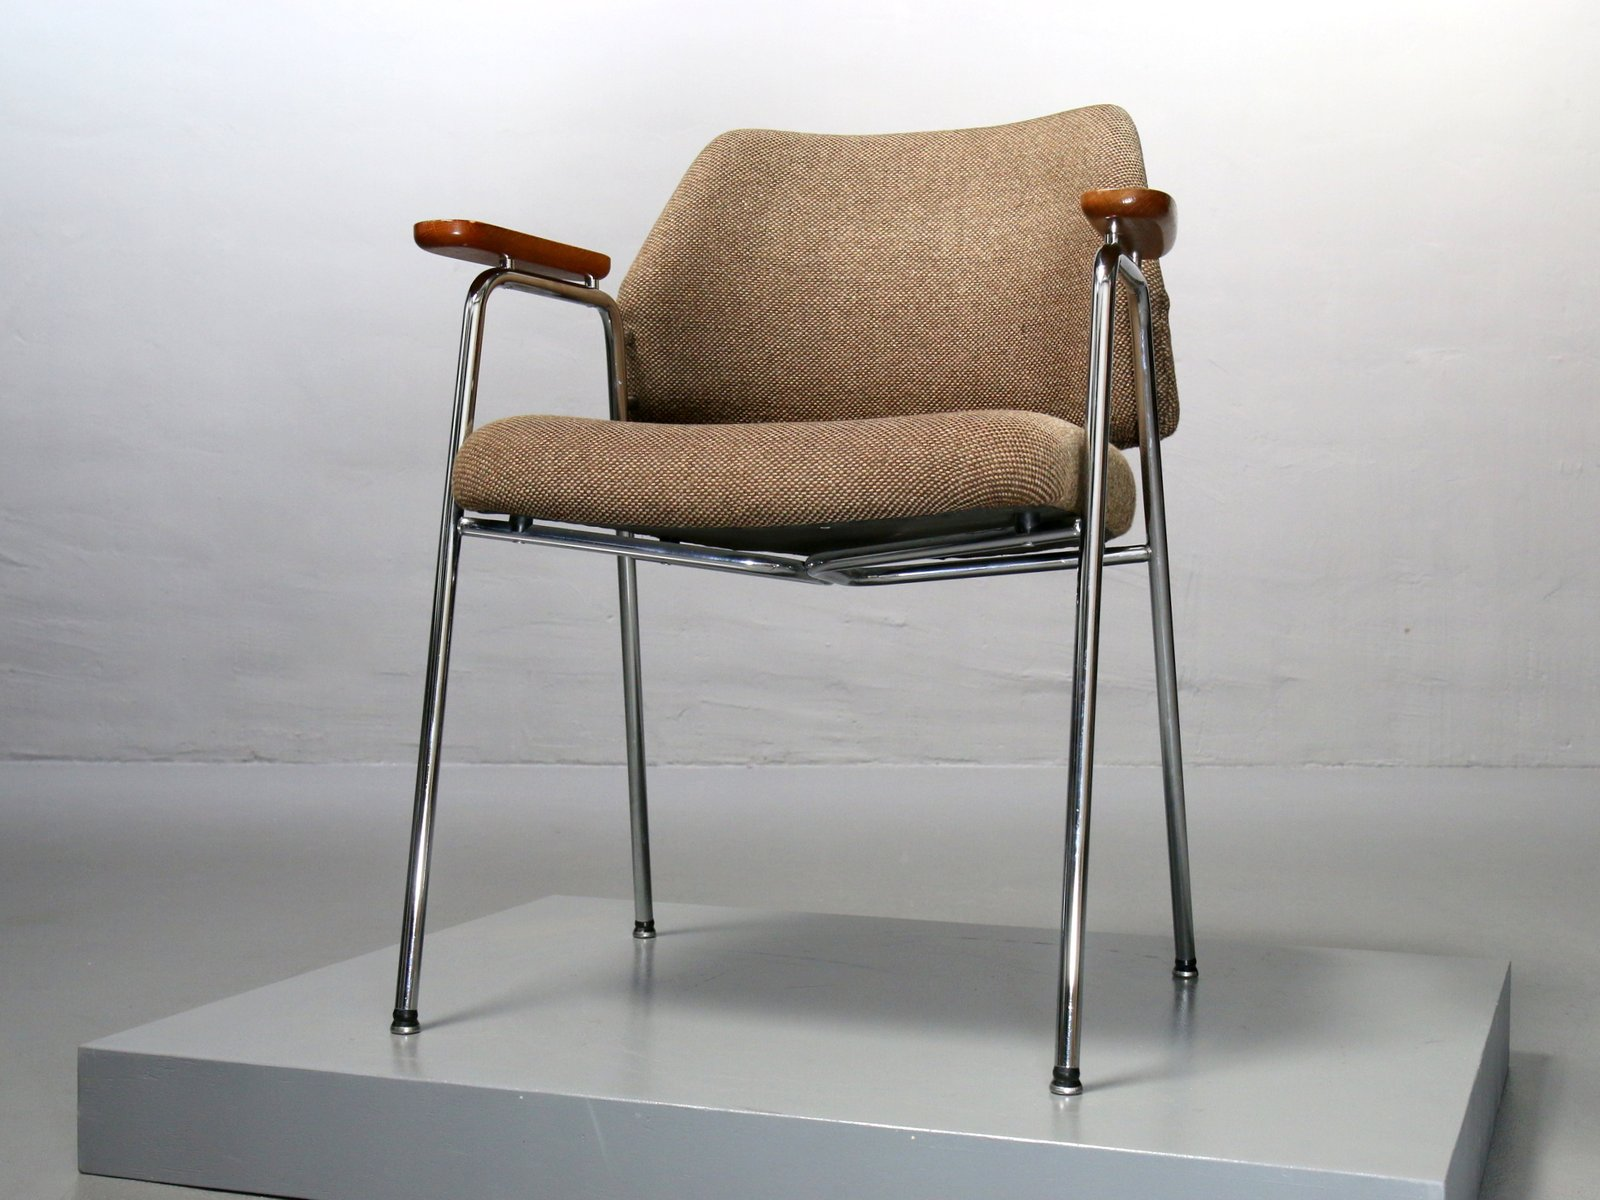 Walter Knoll Teppiche Walter Knoll Teppich Best Walter Knoll Aida Orga With